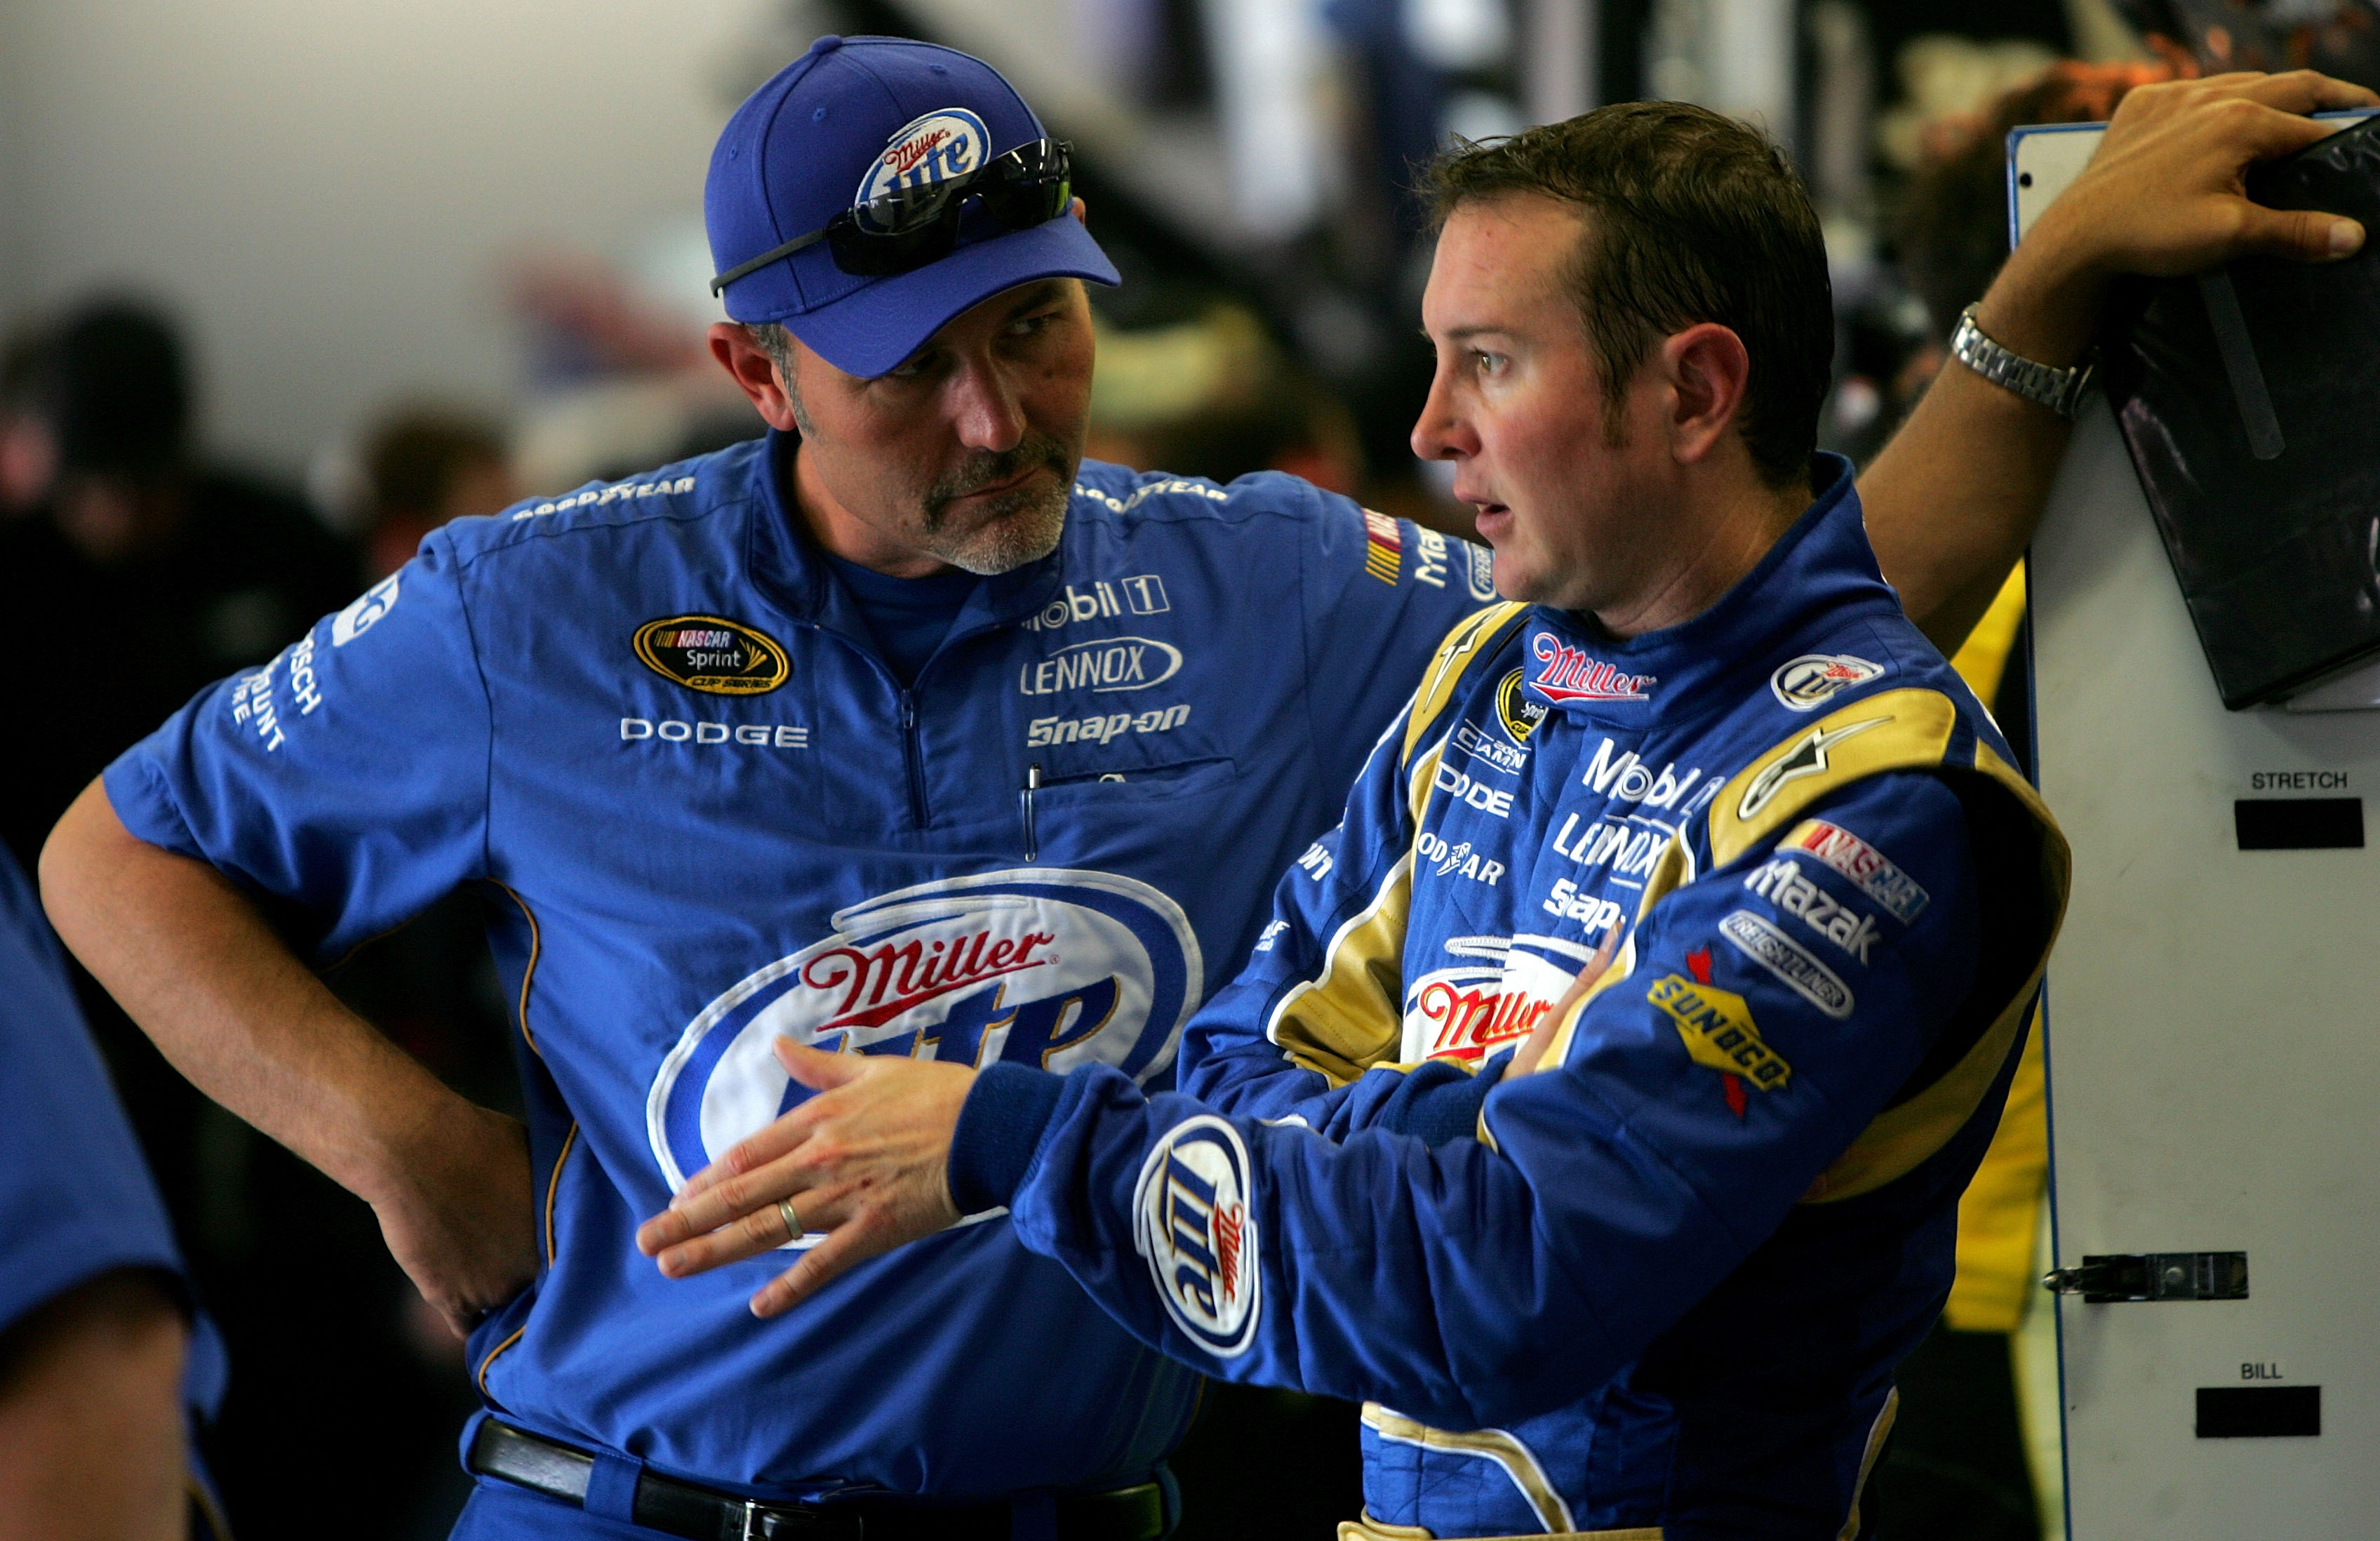 FORT WORTH, TX - APRIL 16:  Kurt Busch (R), driver of the #2 Miller Lite Dodge, talks with crew chief Steve Addington in the garage during practice for the NASCAR Sprint Cup Series Samsung Mobile 500 at Texas Motor Speedway on April 16, 2010 in Fort Worth